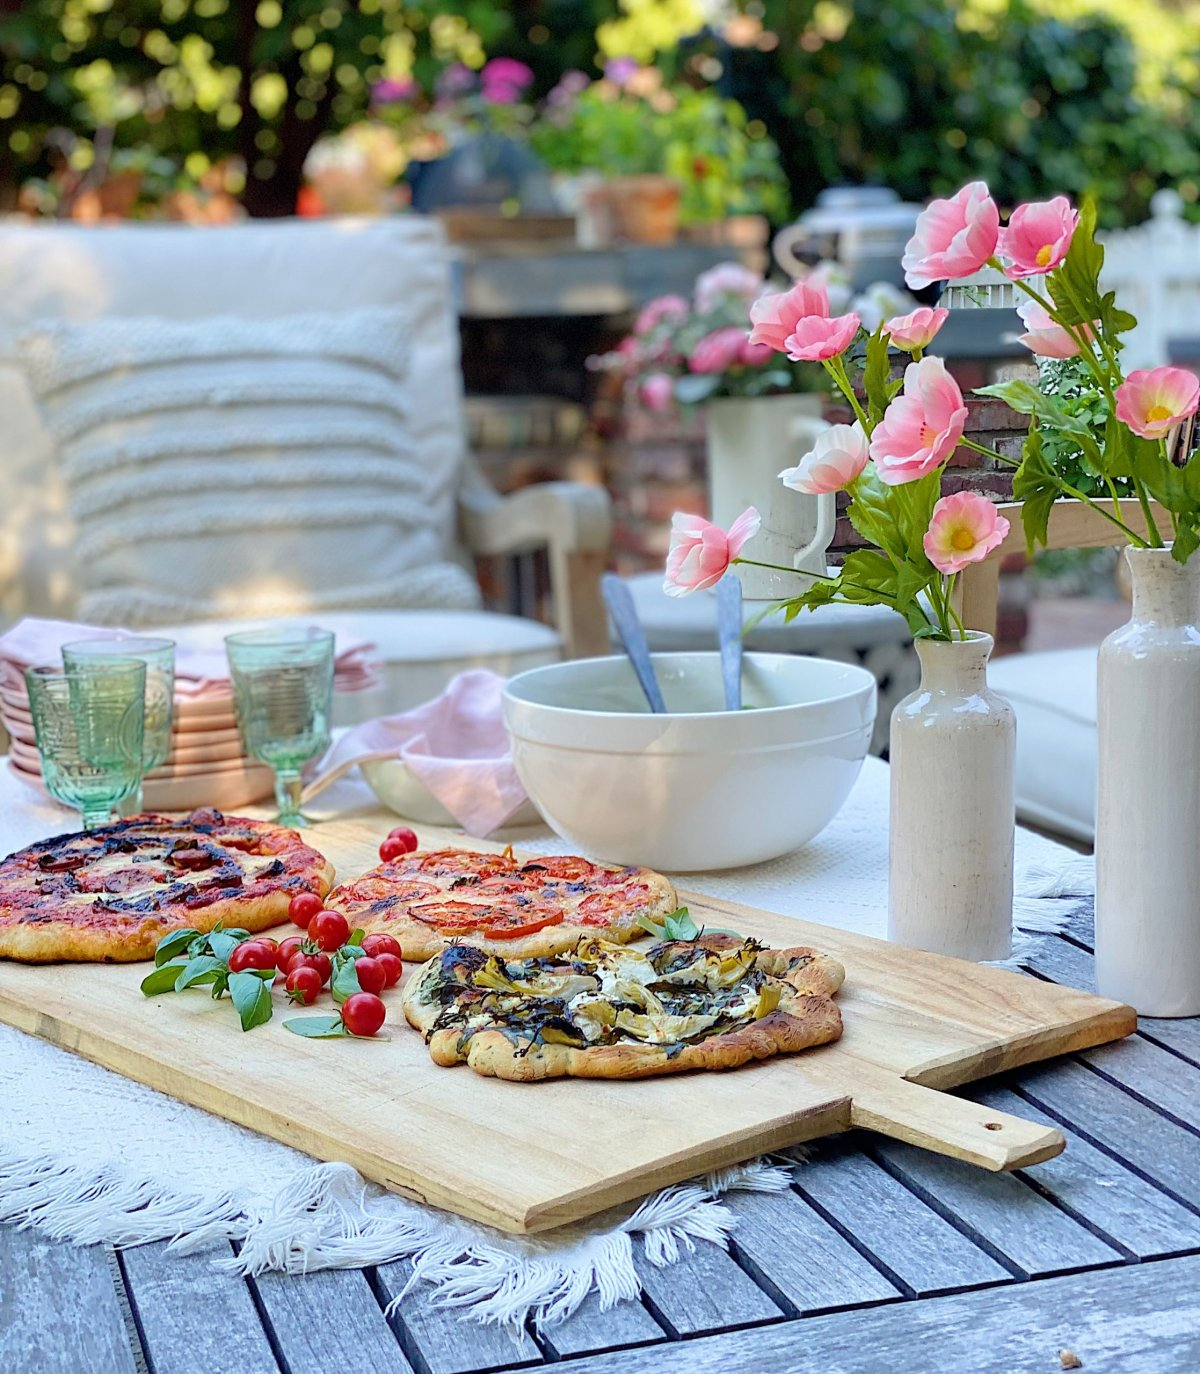 Summer Pizza Night on the Back Porch and Patio